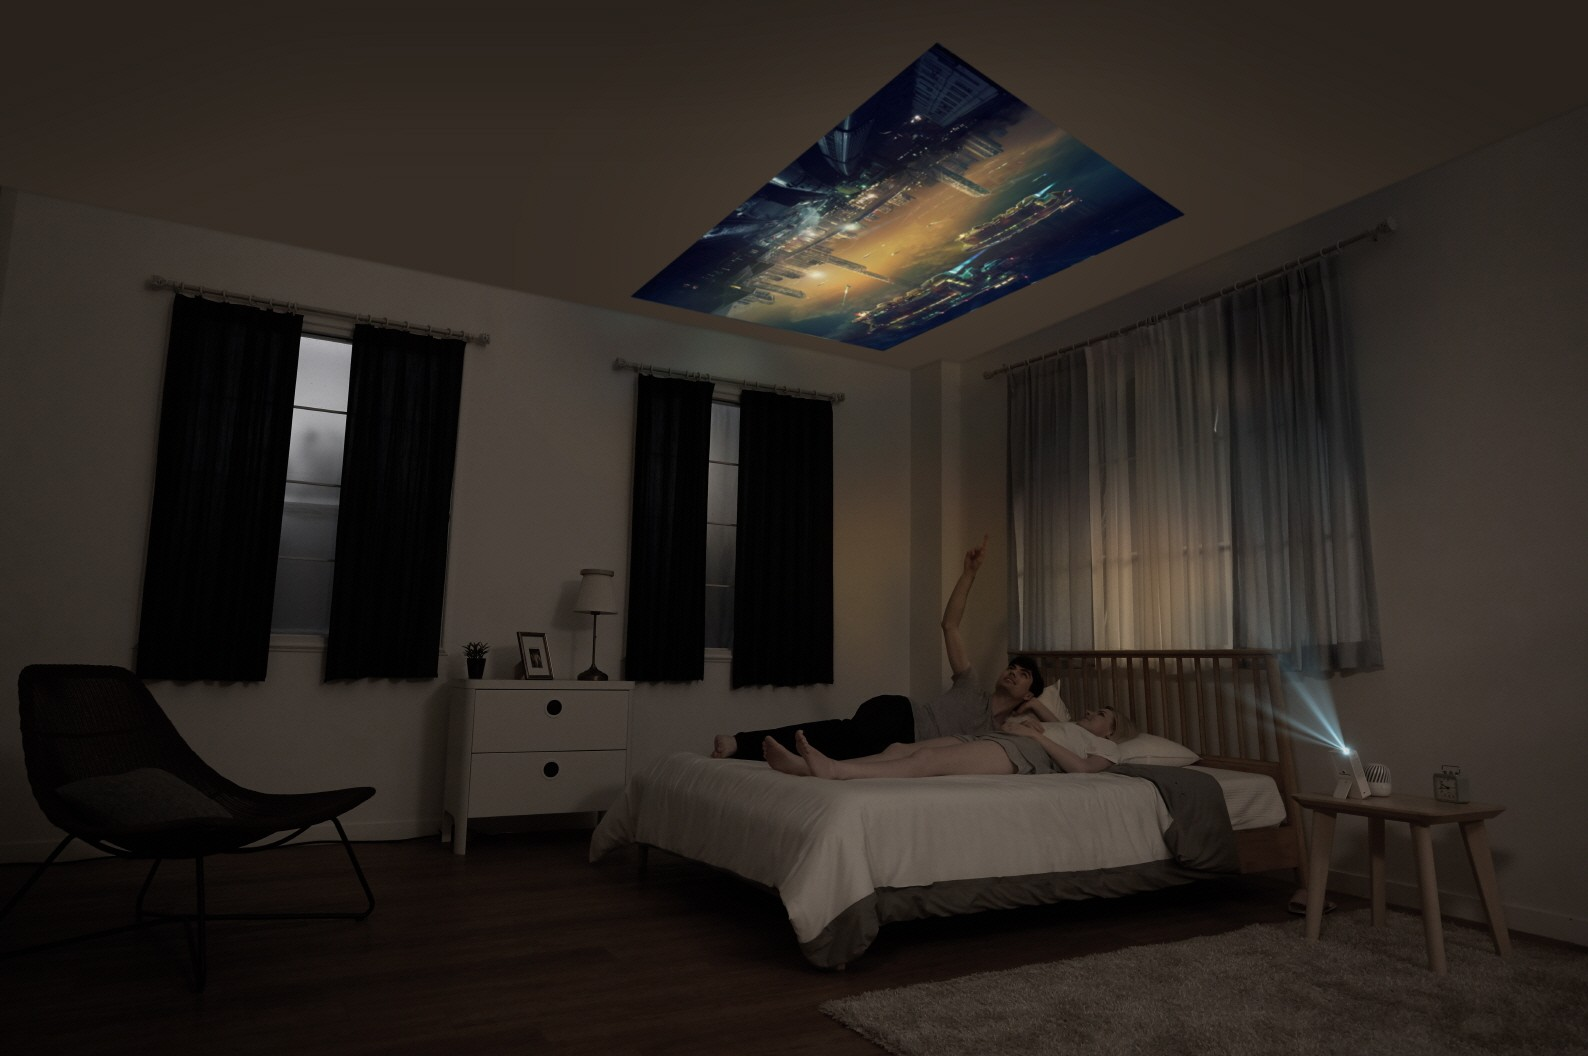 A usage scenario for the LG MiniBeam Projector in the bedroom